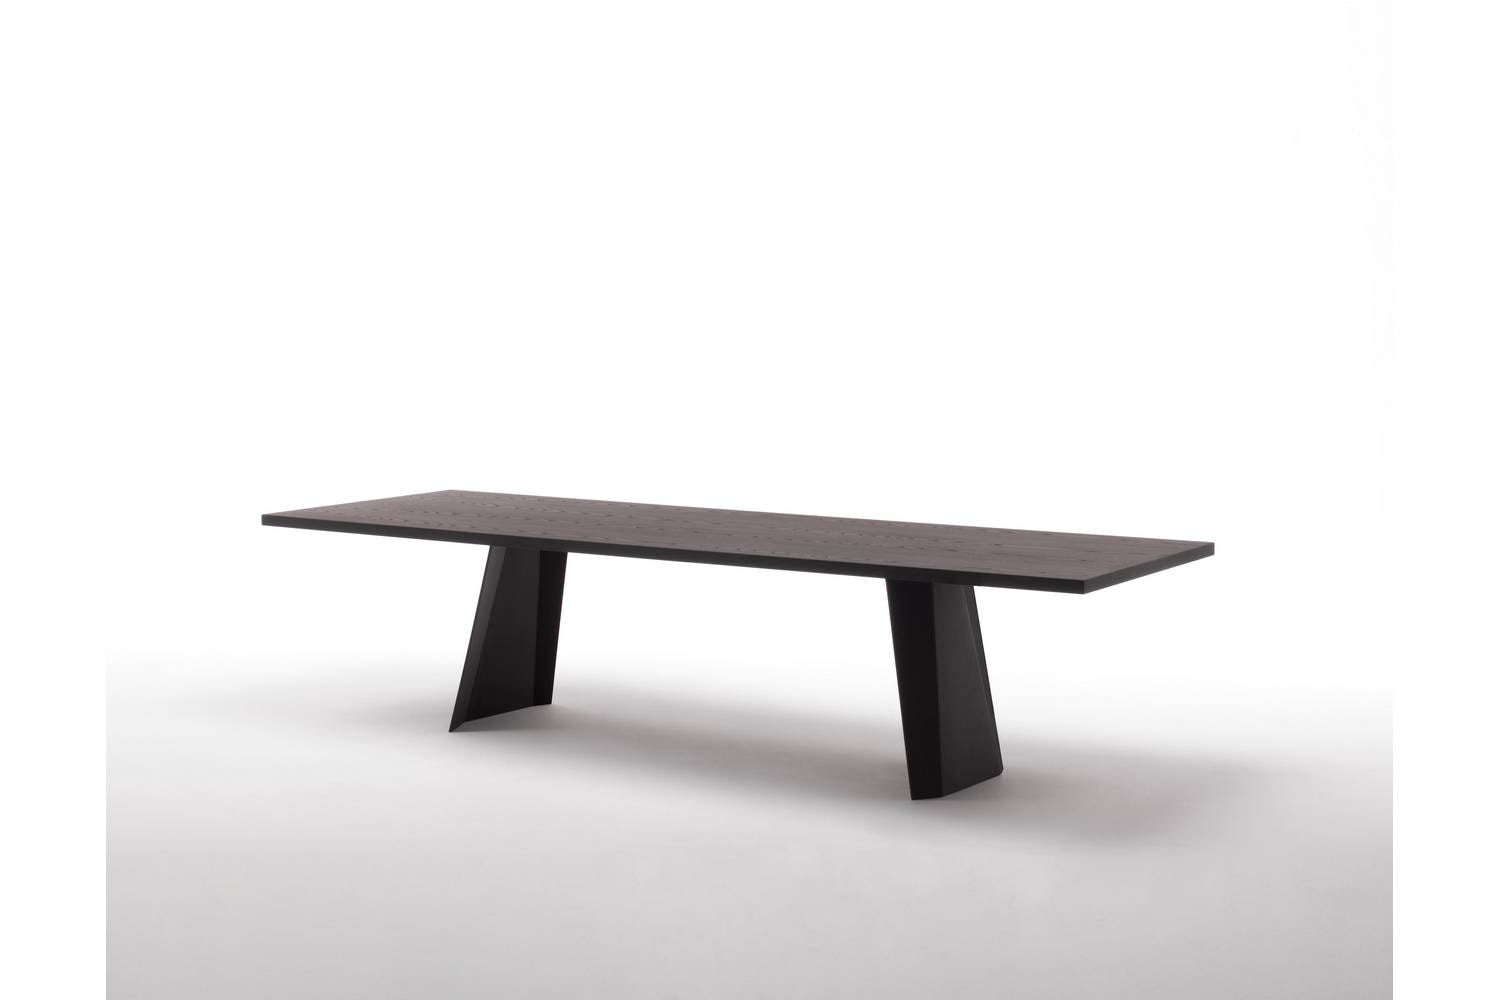 Wedge Table by Arik Levy for Living Divani